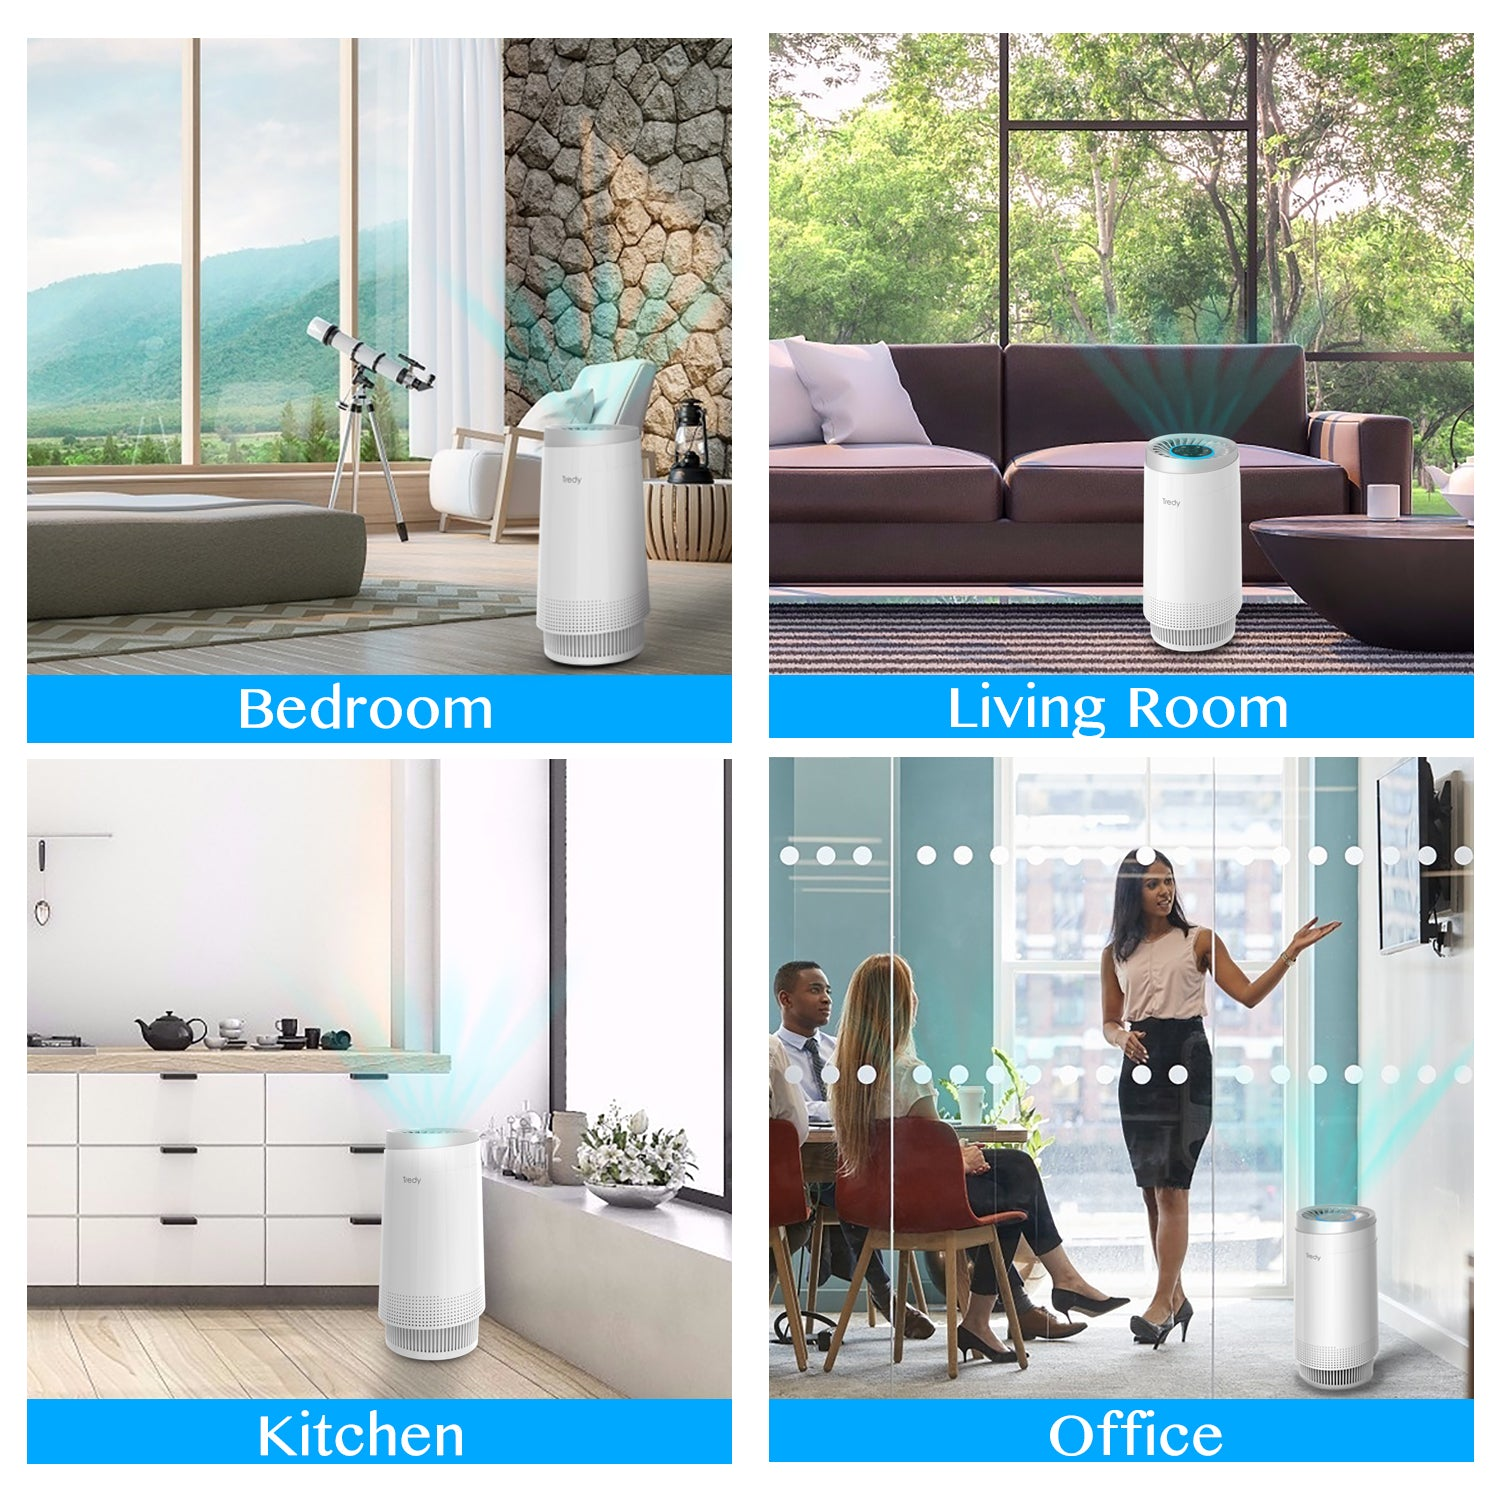 Air Purifier for Home 180 Sq.ft Room with H13 True Hepa Filter, Removes Dust/Smoke/Odor/Pollen/Pet Dander and Other Particles